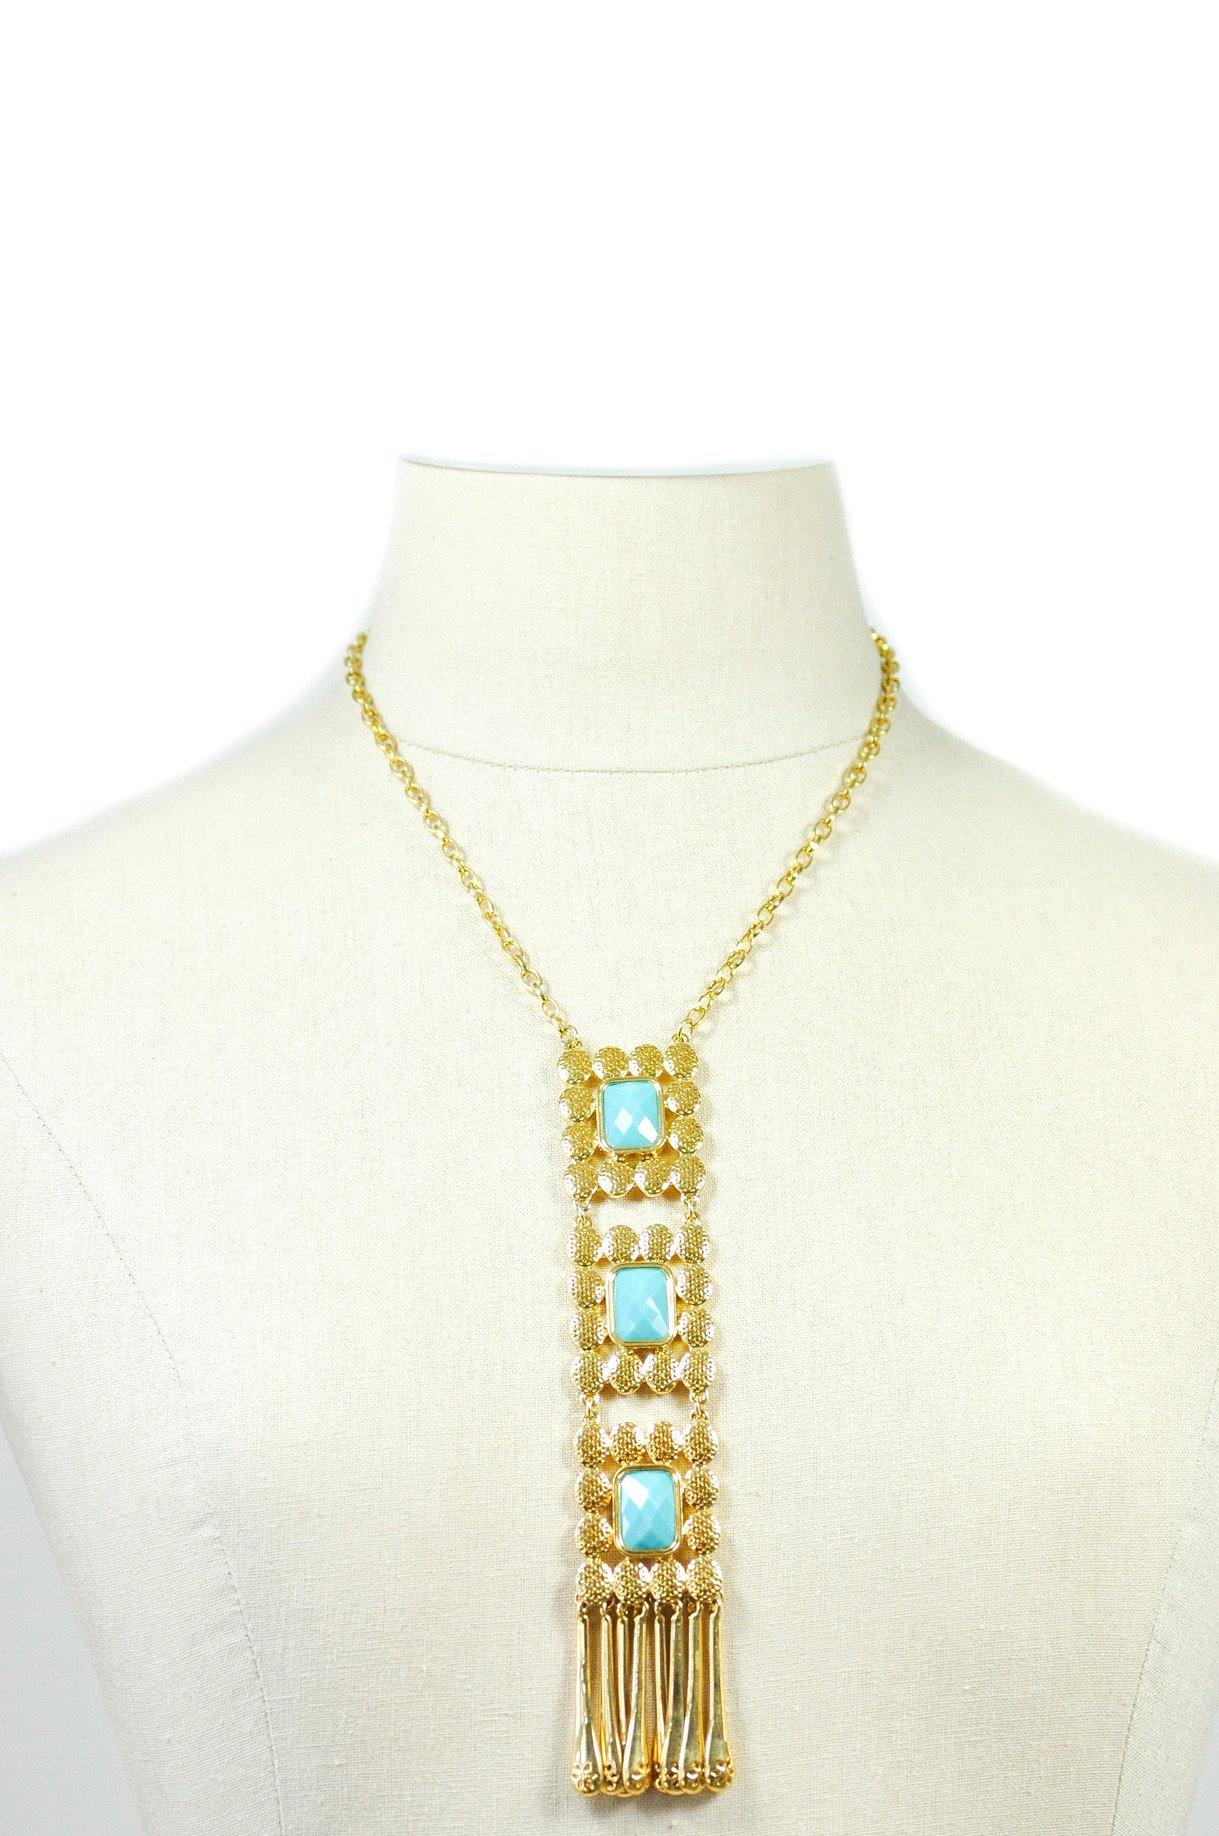 80's Joan Rivers Statement Fringed Pendant Necklace